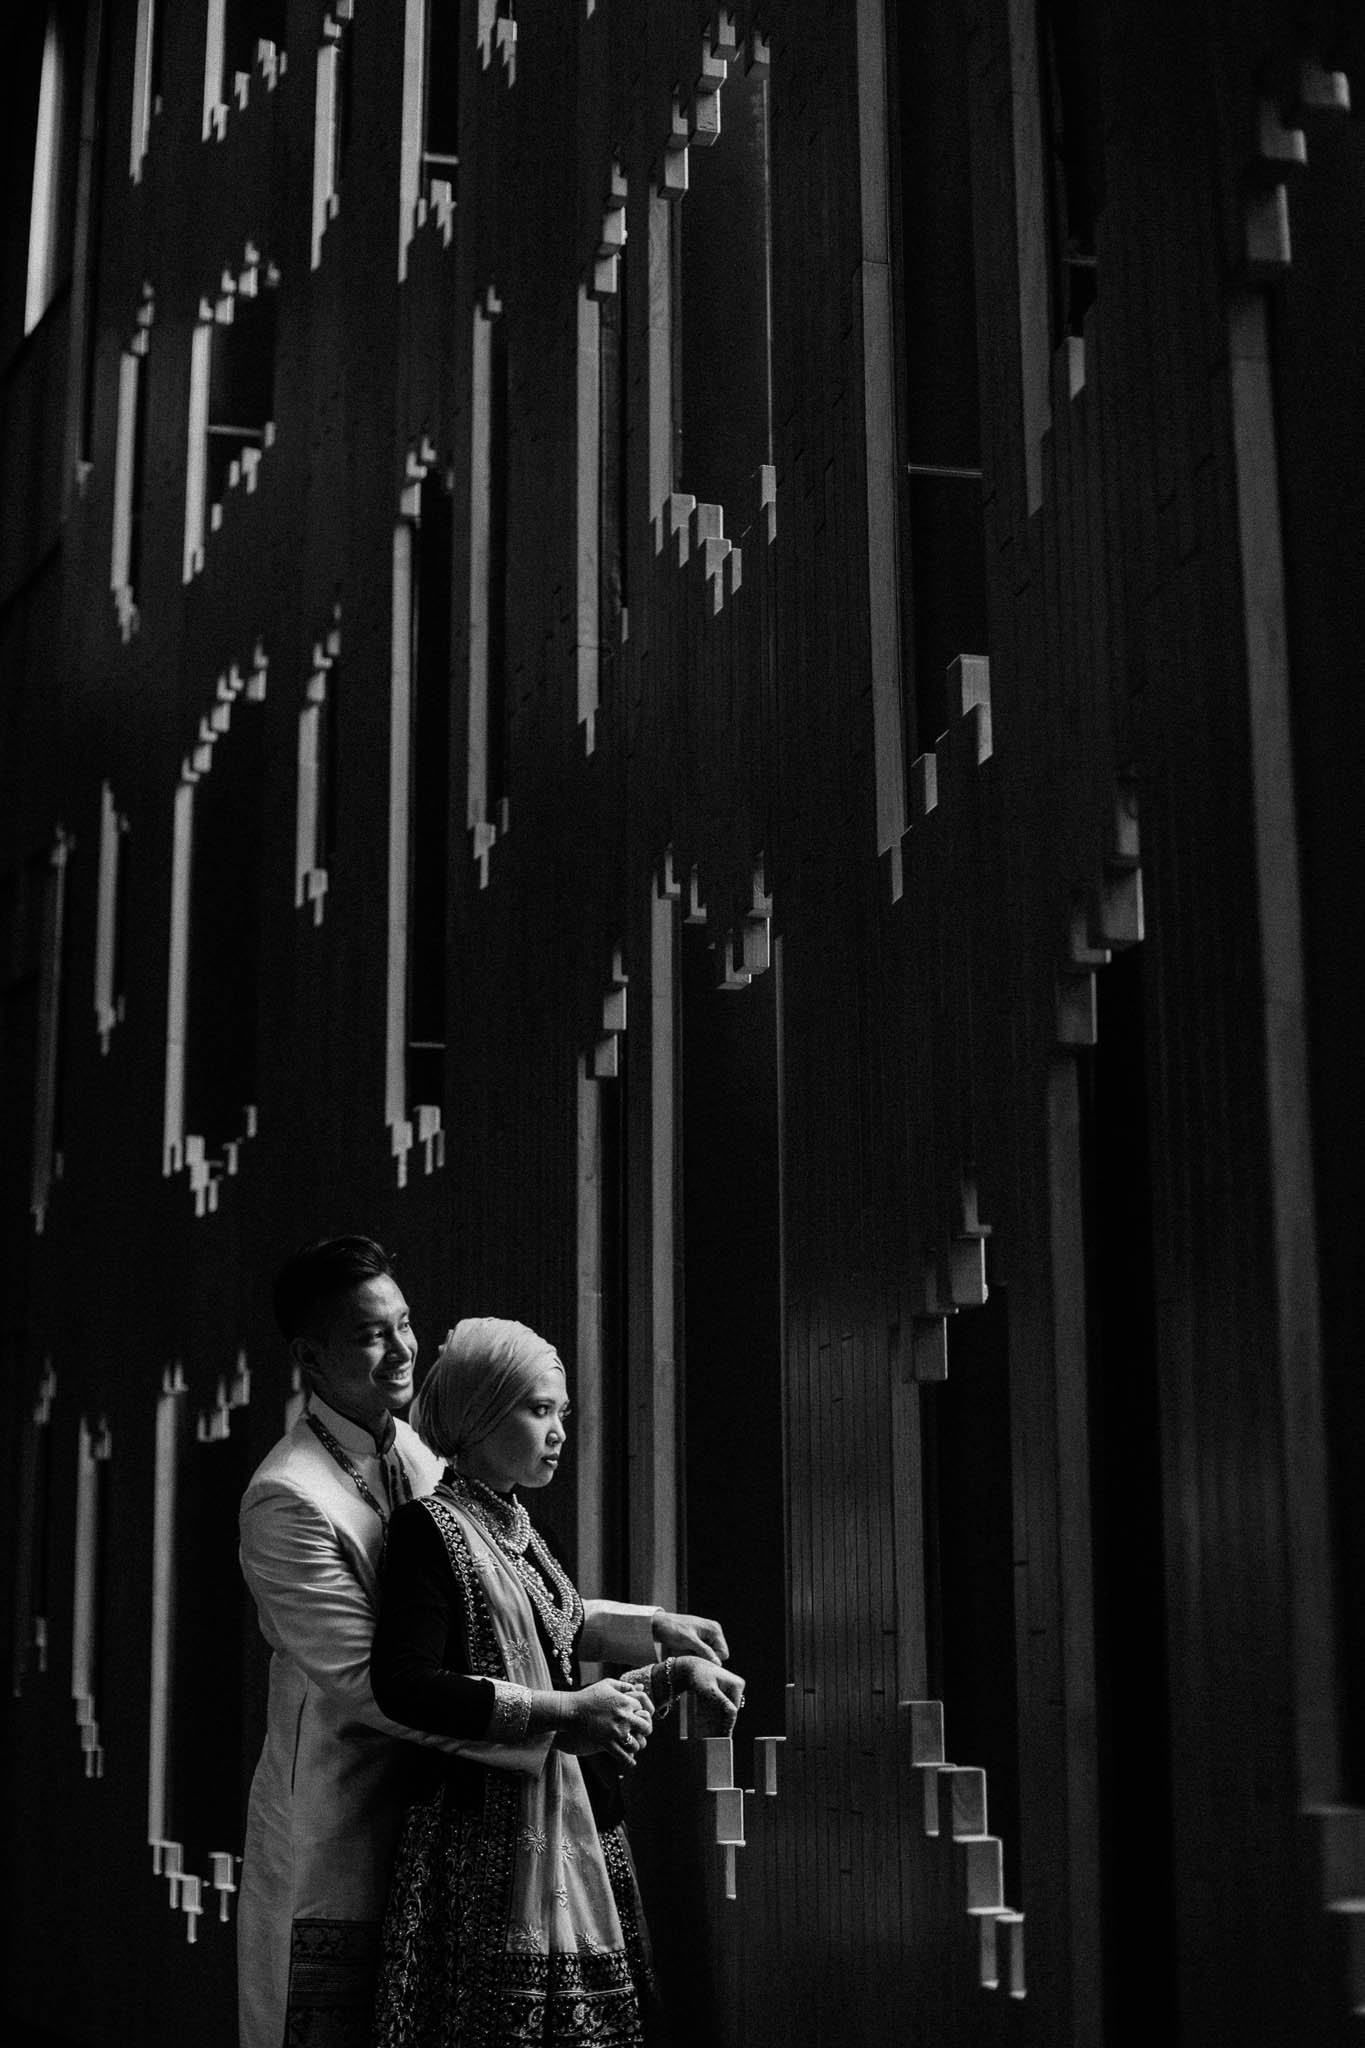 singapore-wedding-photographer-we-made-these-2016-selects-055.jpg